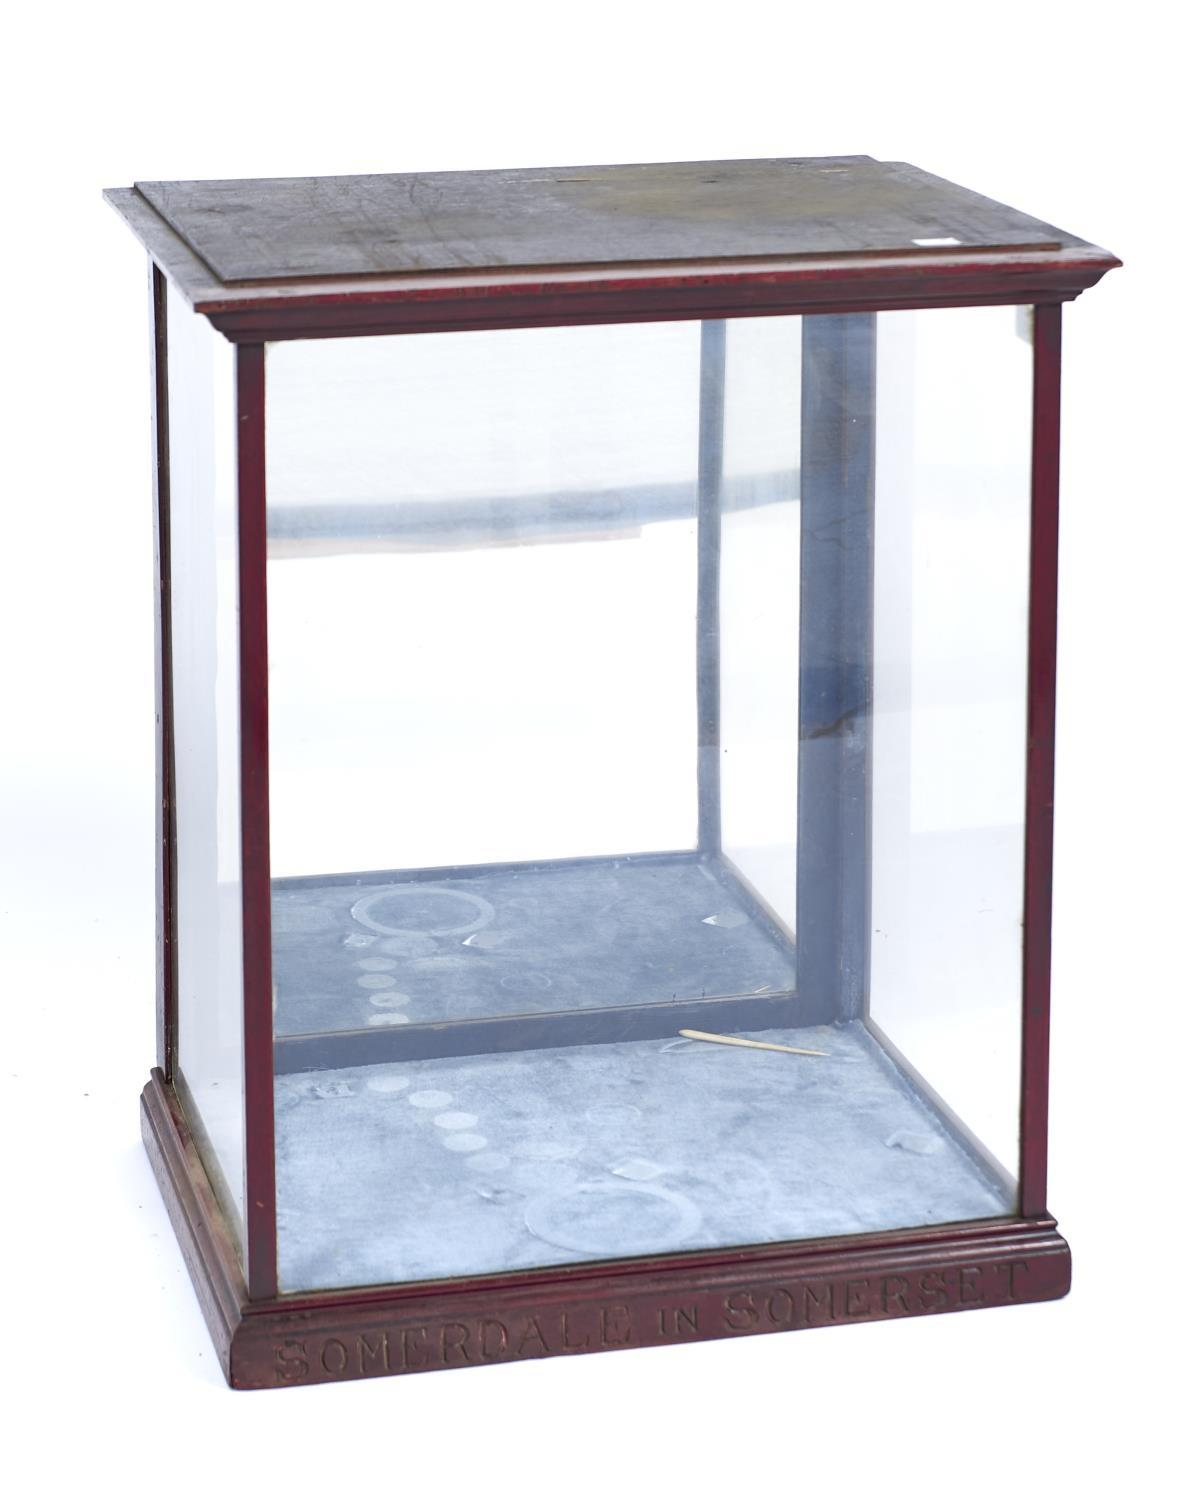 SOMERDALE IN SOMERSET - A TABLE TOP MAHOGANY DISPLAY CABINET WITH FLARED CORNICE, GLAZED FRONT AND